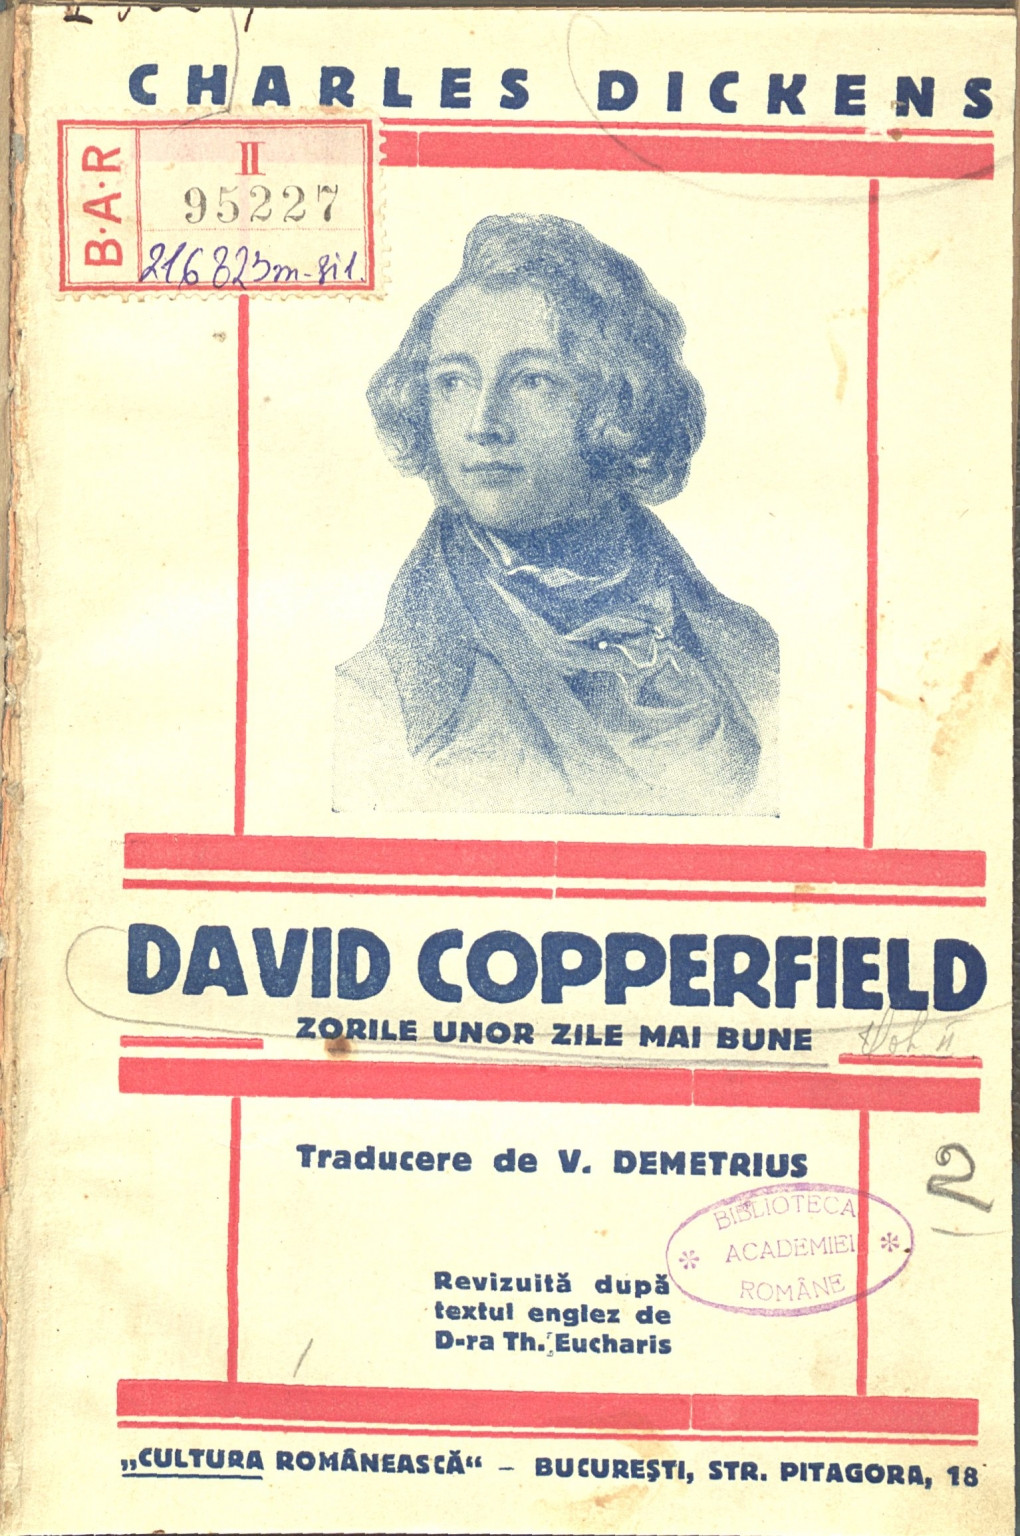 David Copperfield vol. II